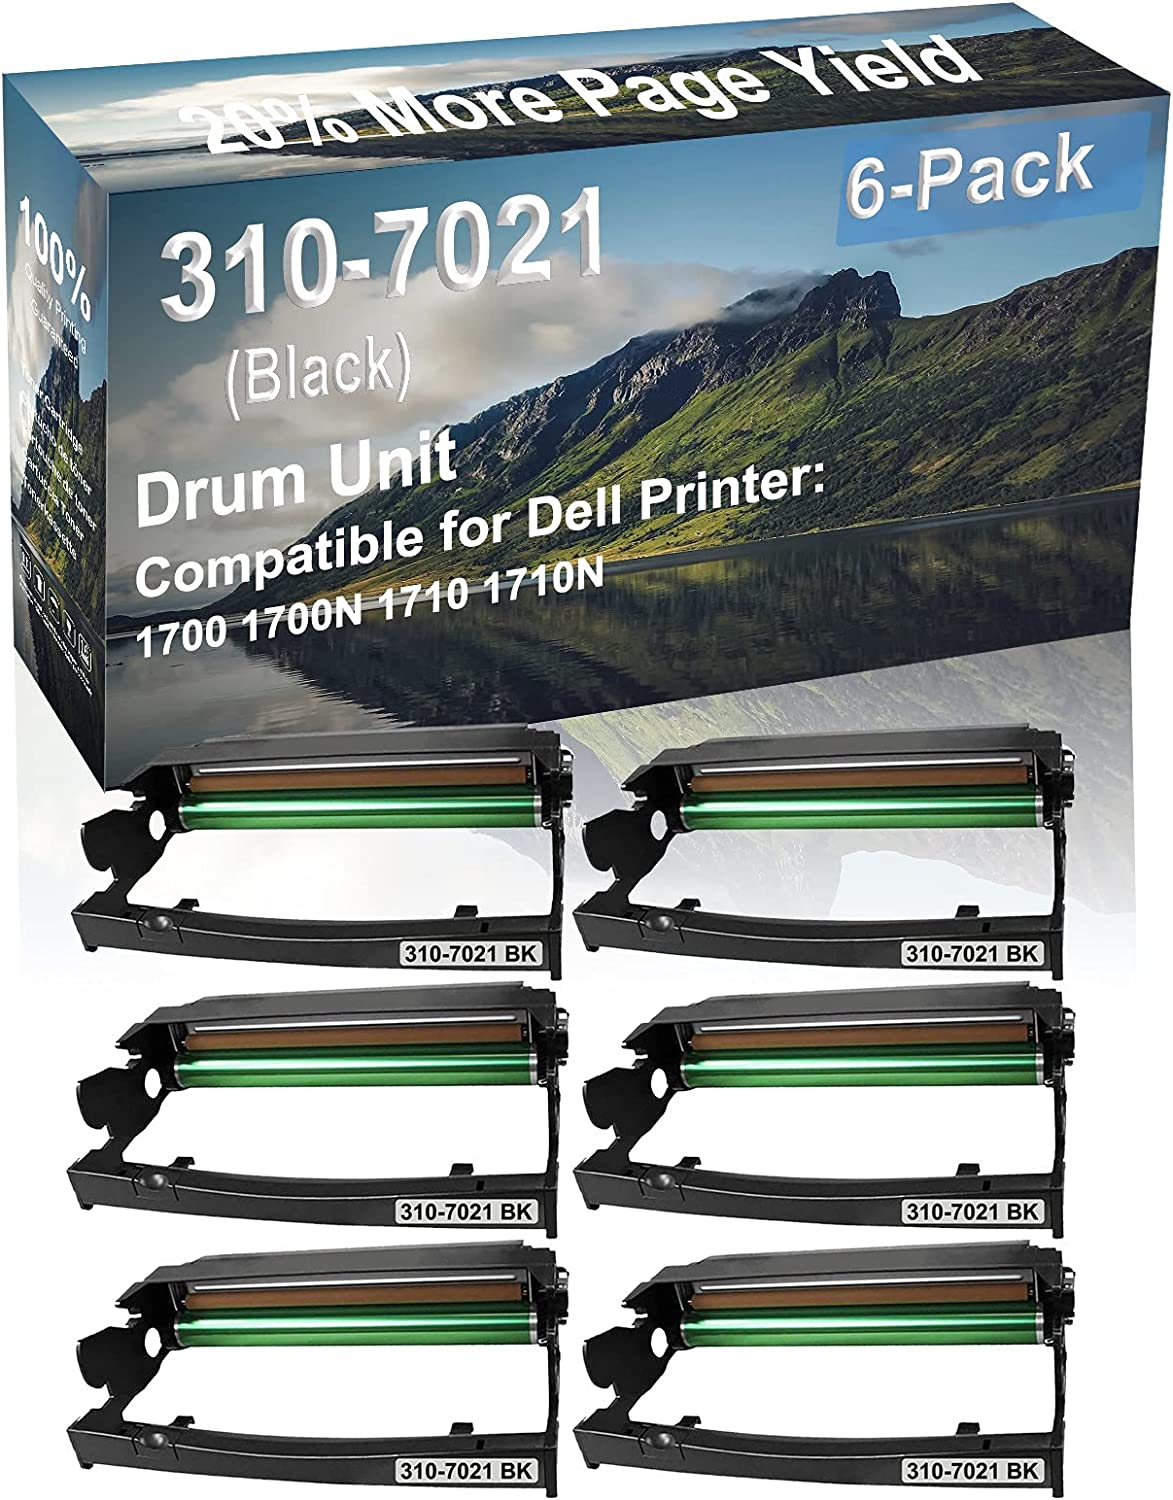 6-Pack Compatible Drum Unit (Black) Replacement for Dell 310-7021 Drum Kit use for Dell 1700 1700N 1710 1710N Printer